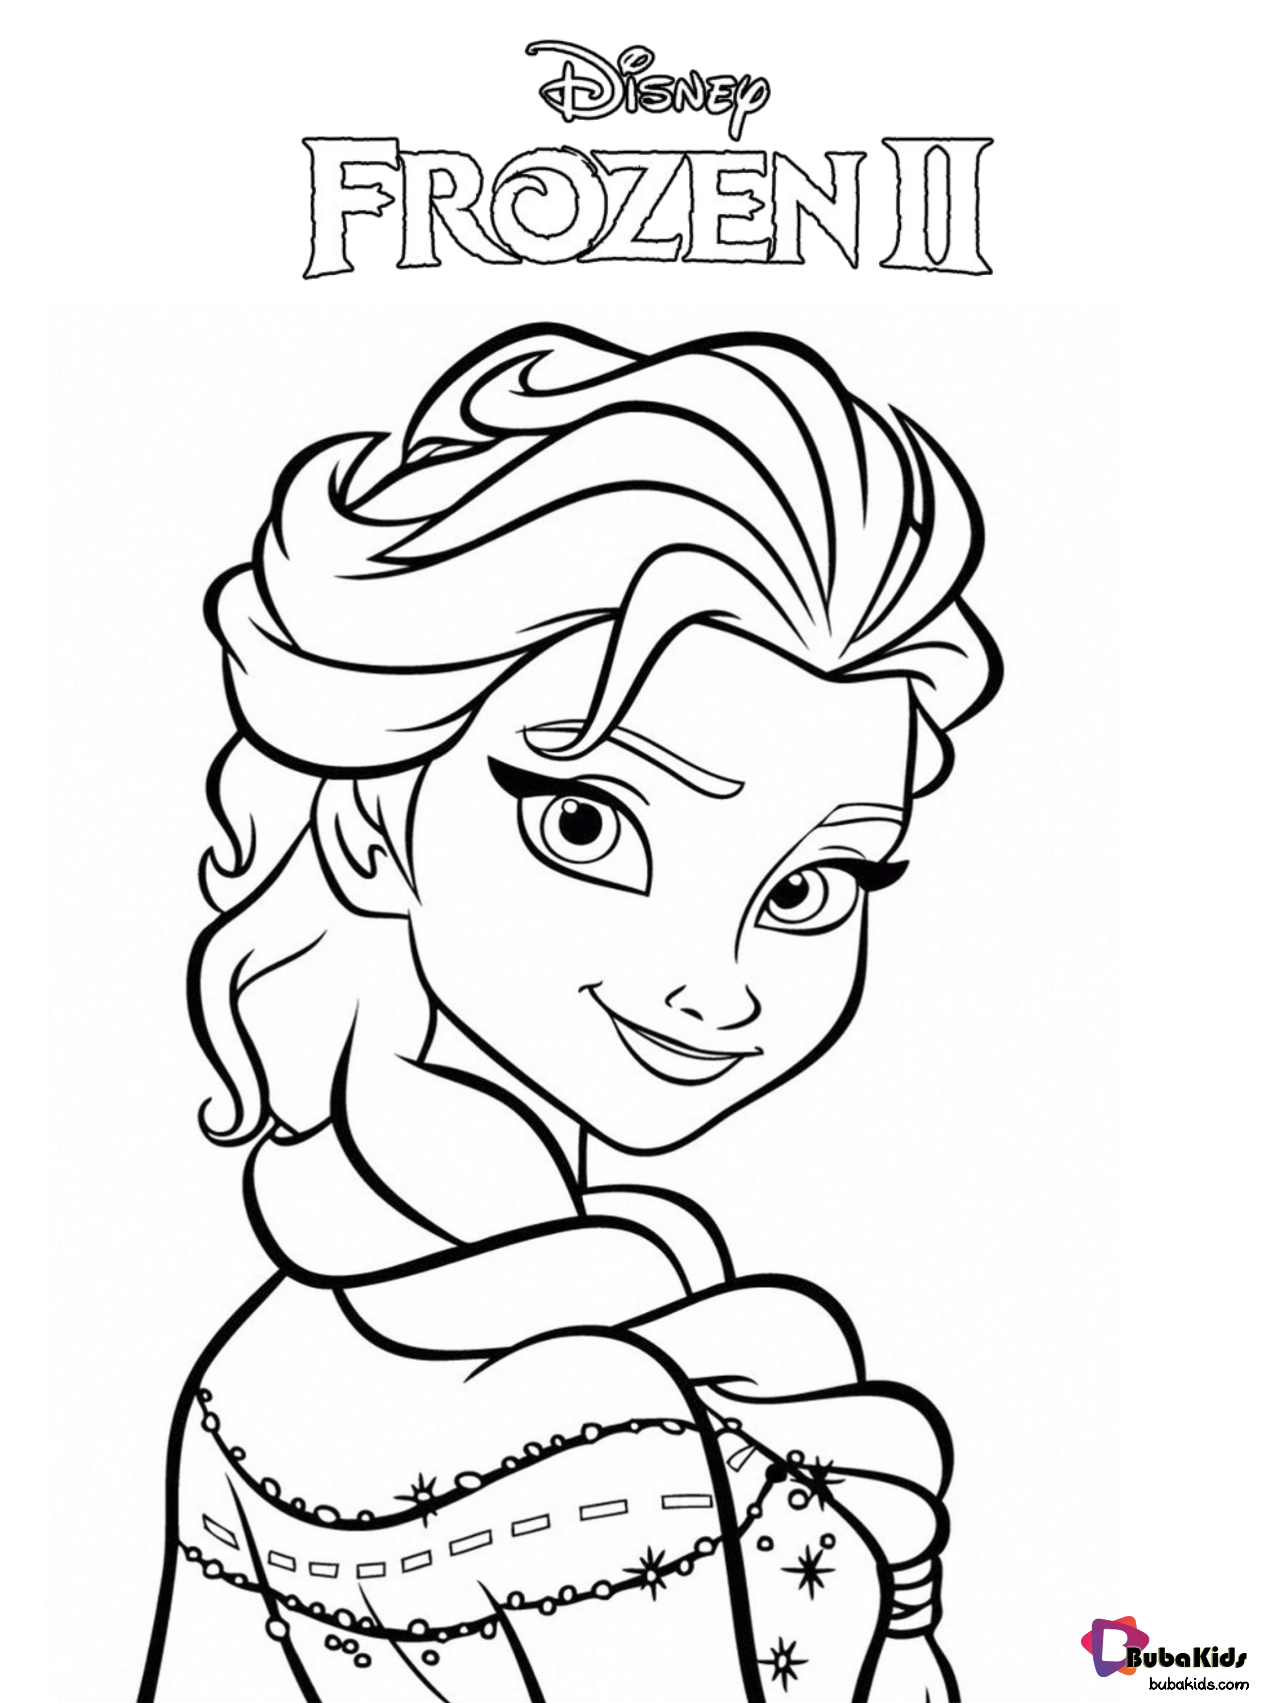 Free Download And Printable Frozen 2 Queen Elsa Coloring Page Elsa Frozen 2 Queen Elsa Els Elsa Coloring Pages Frozen Coloring Pages Disney Coloring Pages